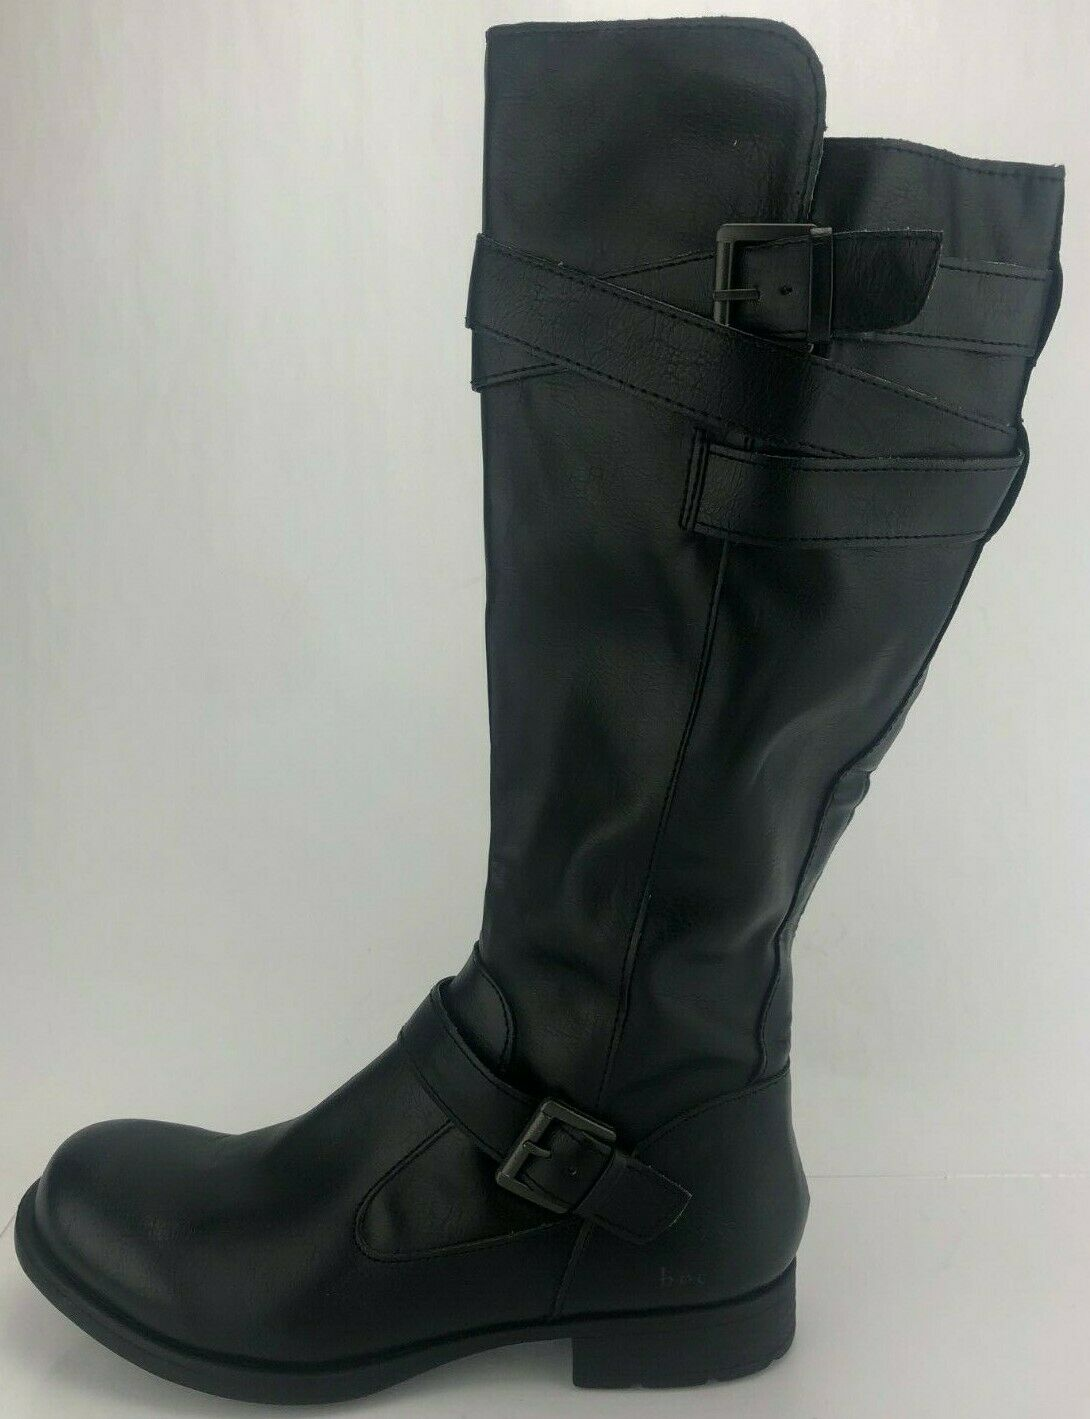 Born BOC Riding Boots Zip Buckle Black Knee High Leather Boots Womens US 9.5 M